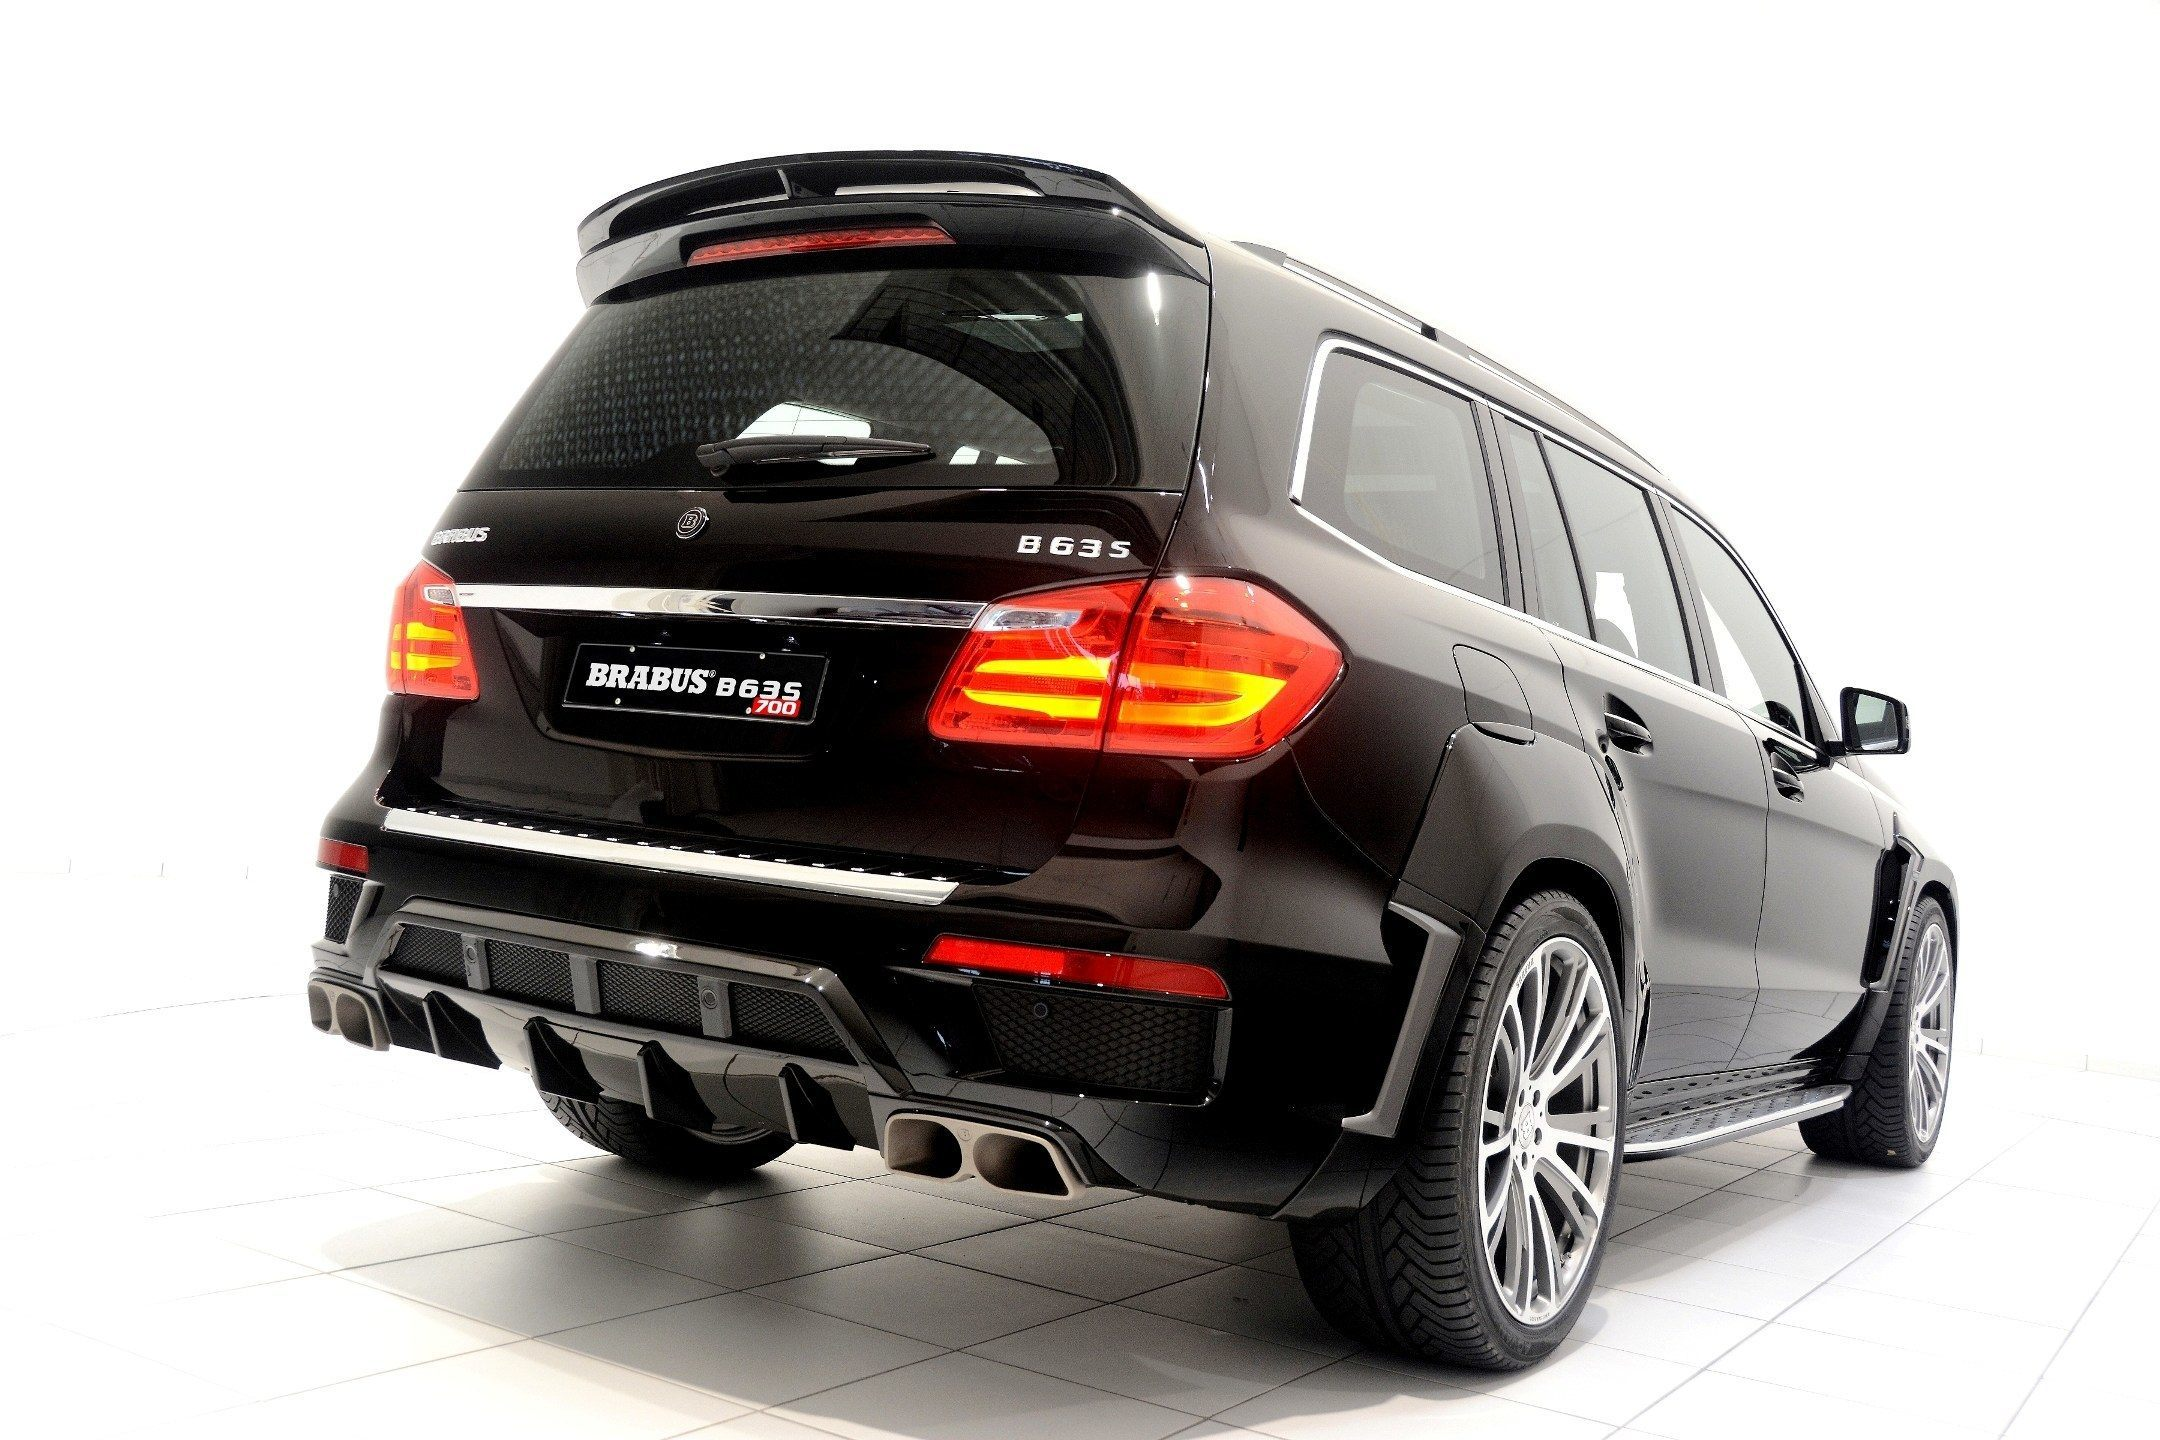 186mph 7 seat suv brabus b63s 700 widestar for mercedes for Mercedes benz suv models list